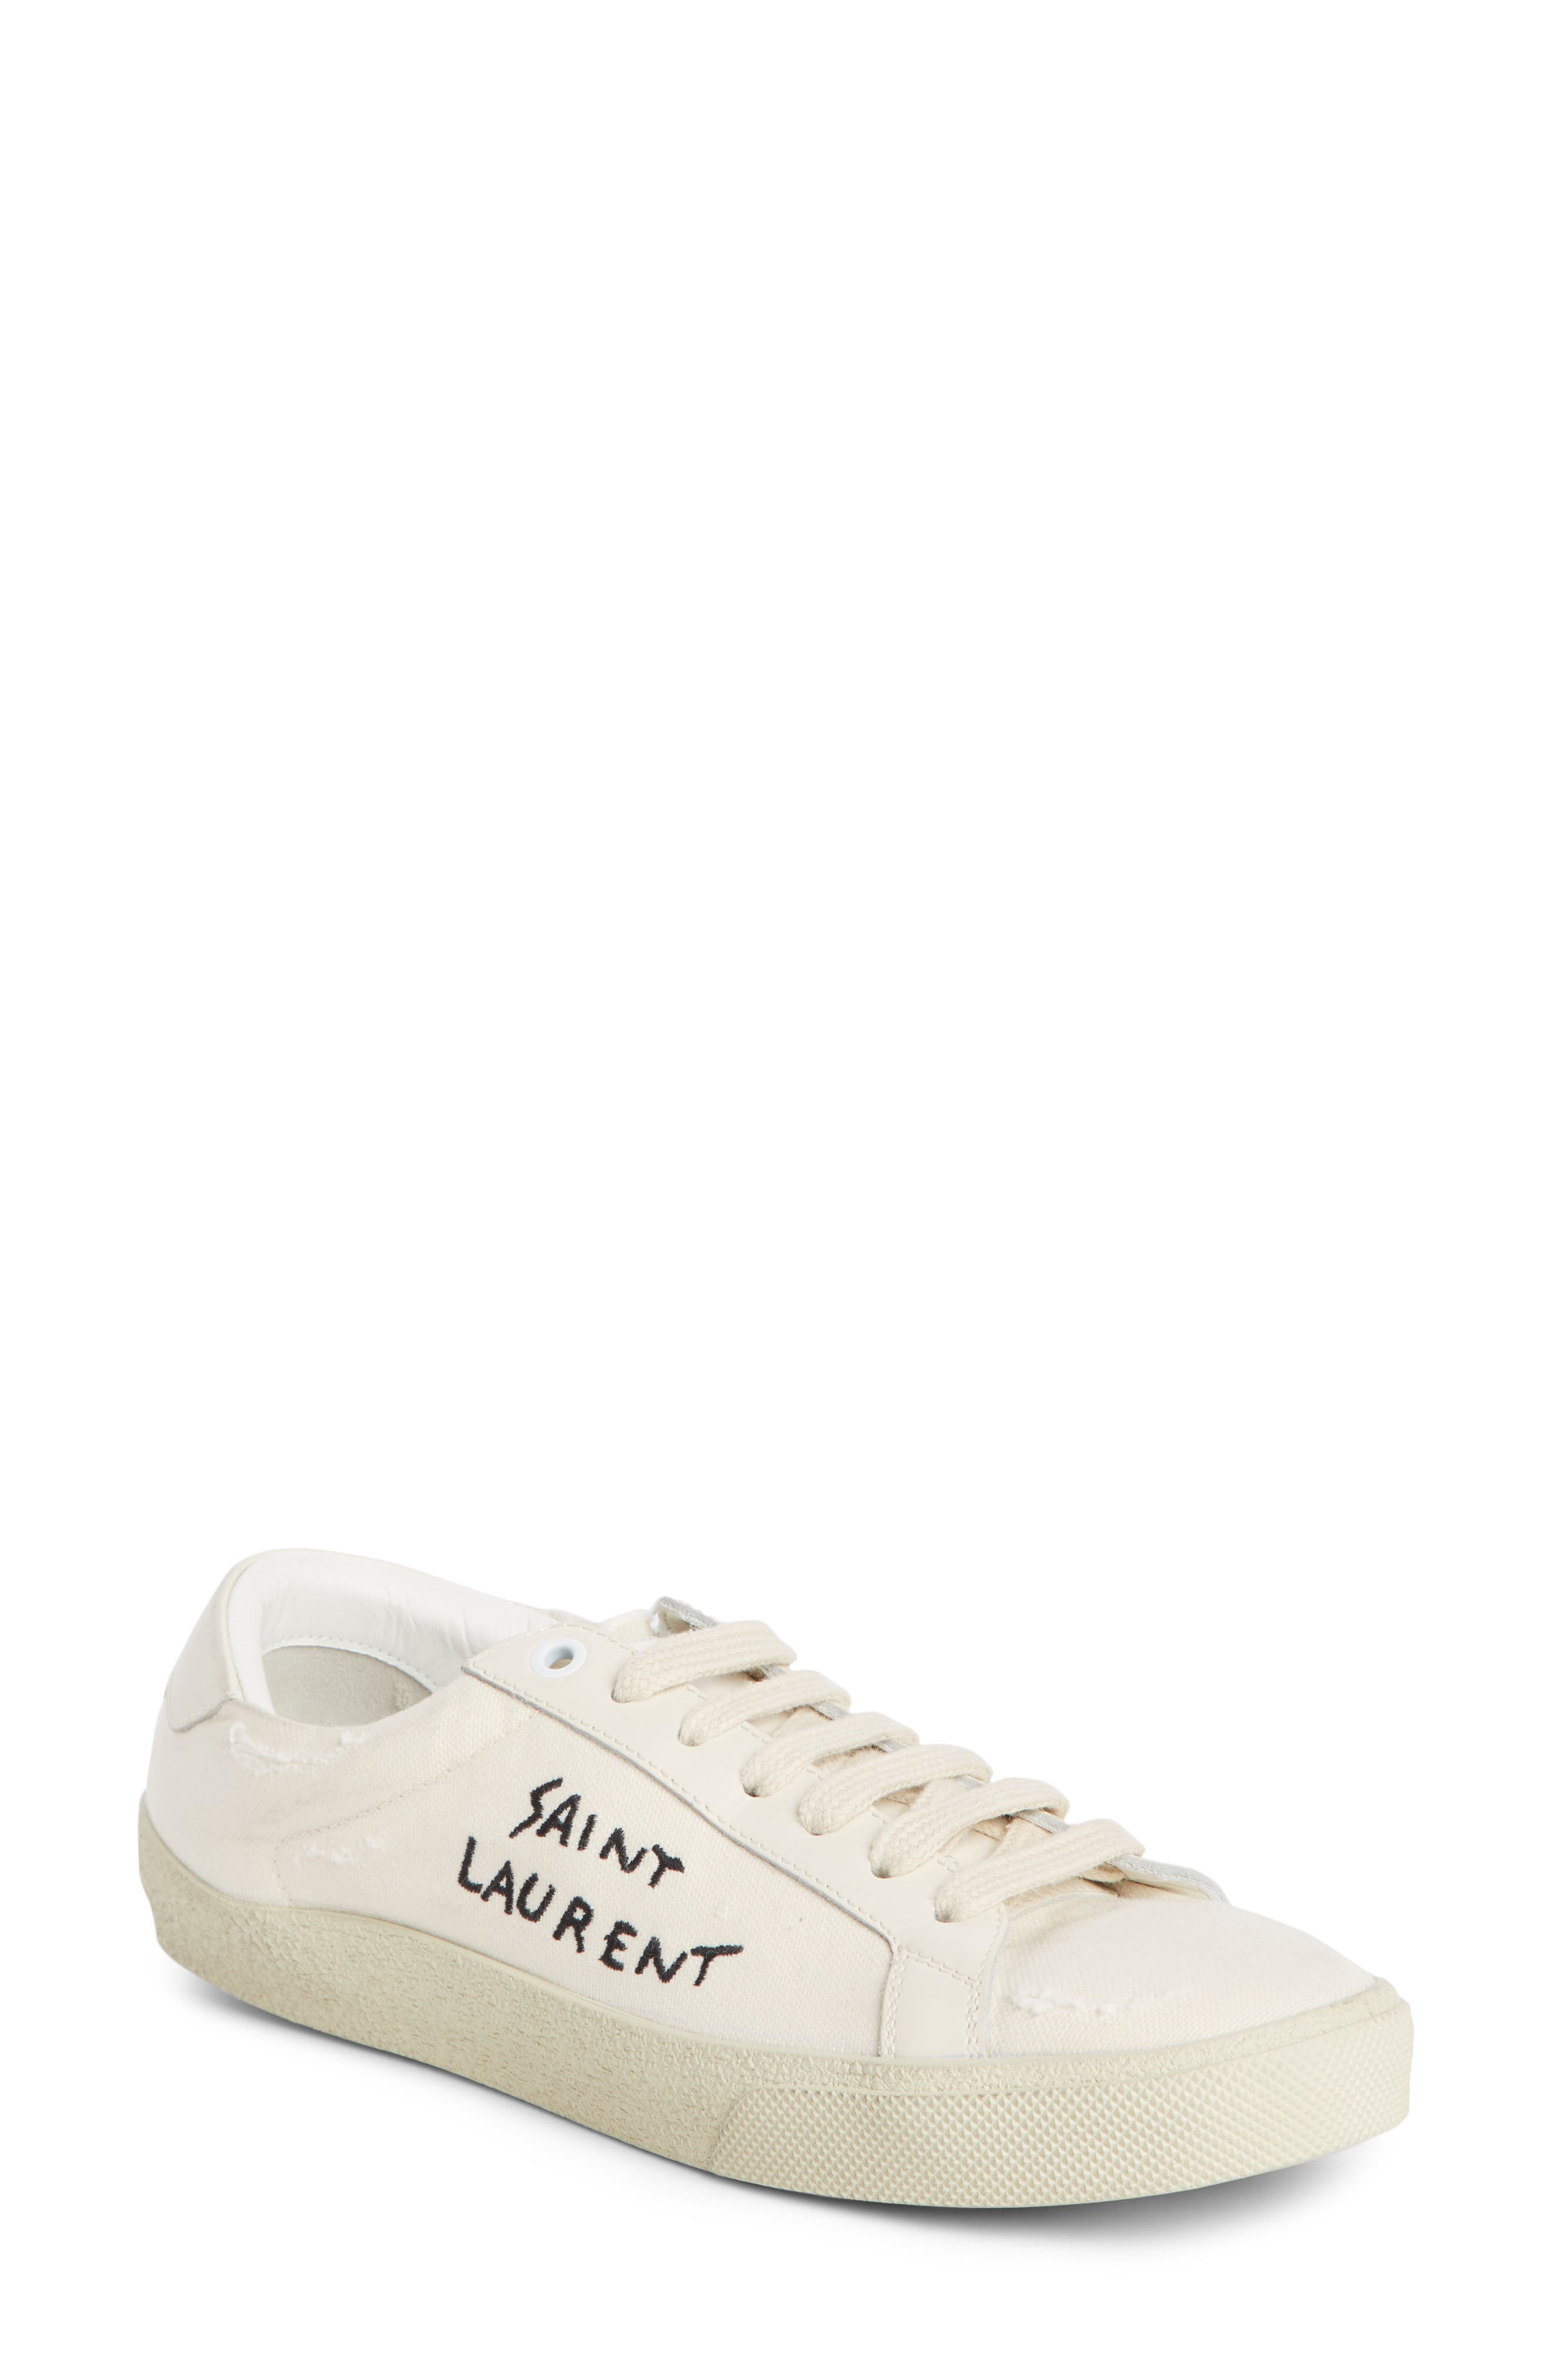 Saint Laurent Court Classic Embroidered Sneaker, Ivory